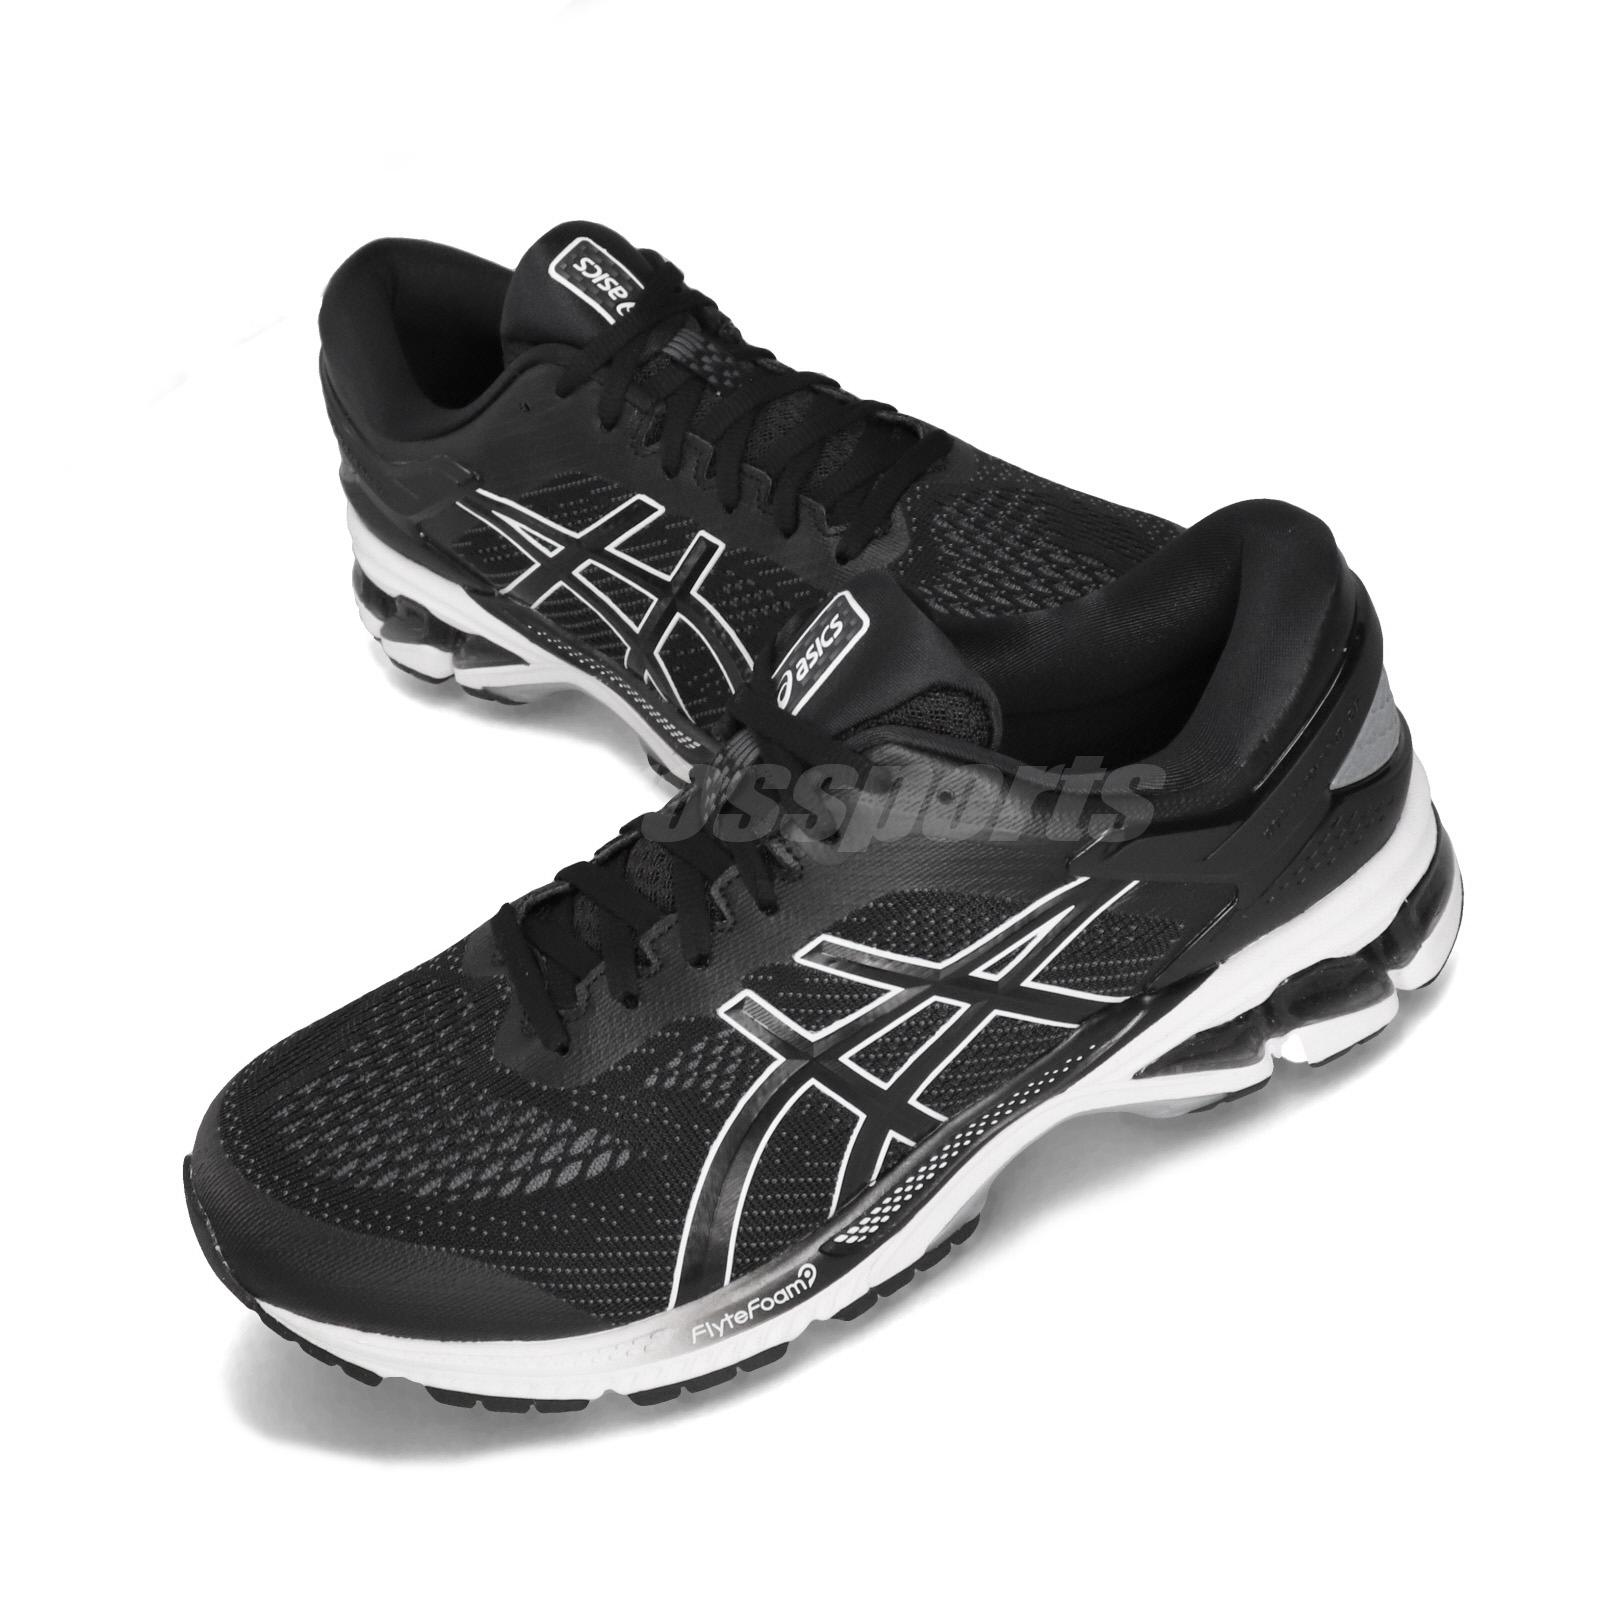 Details about Asics Gel Kayano 26 Mens Running Shoes 1011A541 001 Running Shoes Trainers New show original title